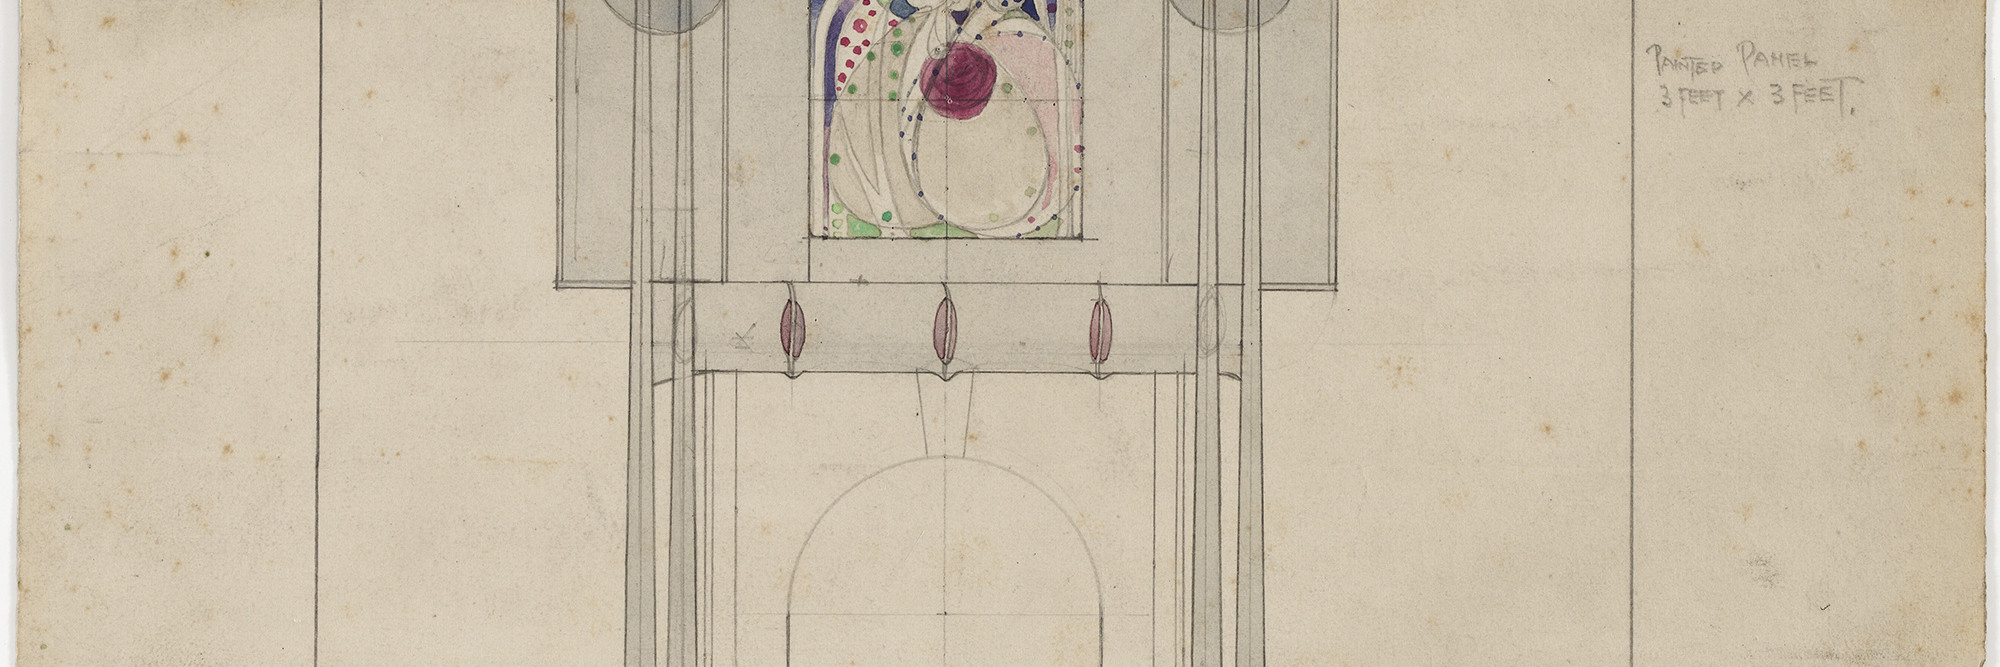 Charles Rennie Mackintosh (British, 1868–1928) and Margaret Macdonald (British, 1865–1933). Design for a Fireplace Wall, interior elevation of drawing room at 3 Lilybank Terrace, Glasgow. 1901. Pencil and watercolor on paper. 11 1/2 × 10 3/4″ (29.2 × 27.3 cm). The Museum of Modern Art, New York. Gift of Joseph H. Heil, by exchange, 2009